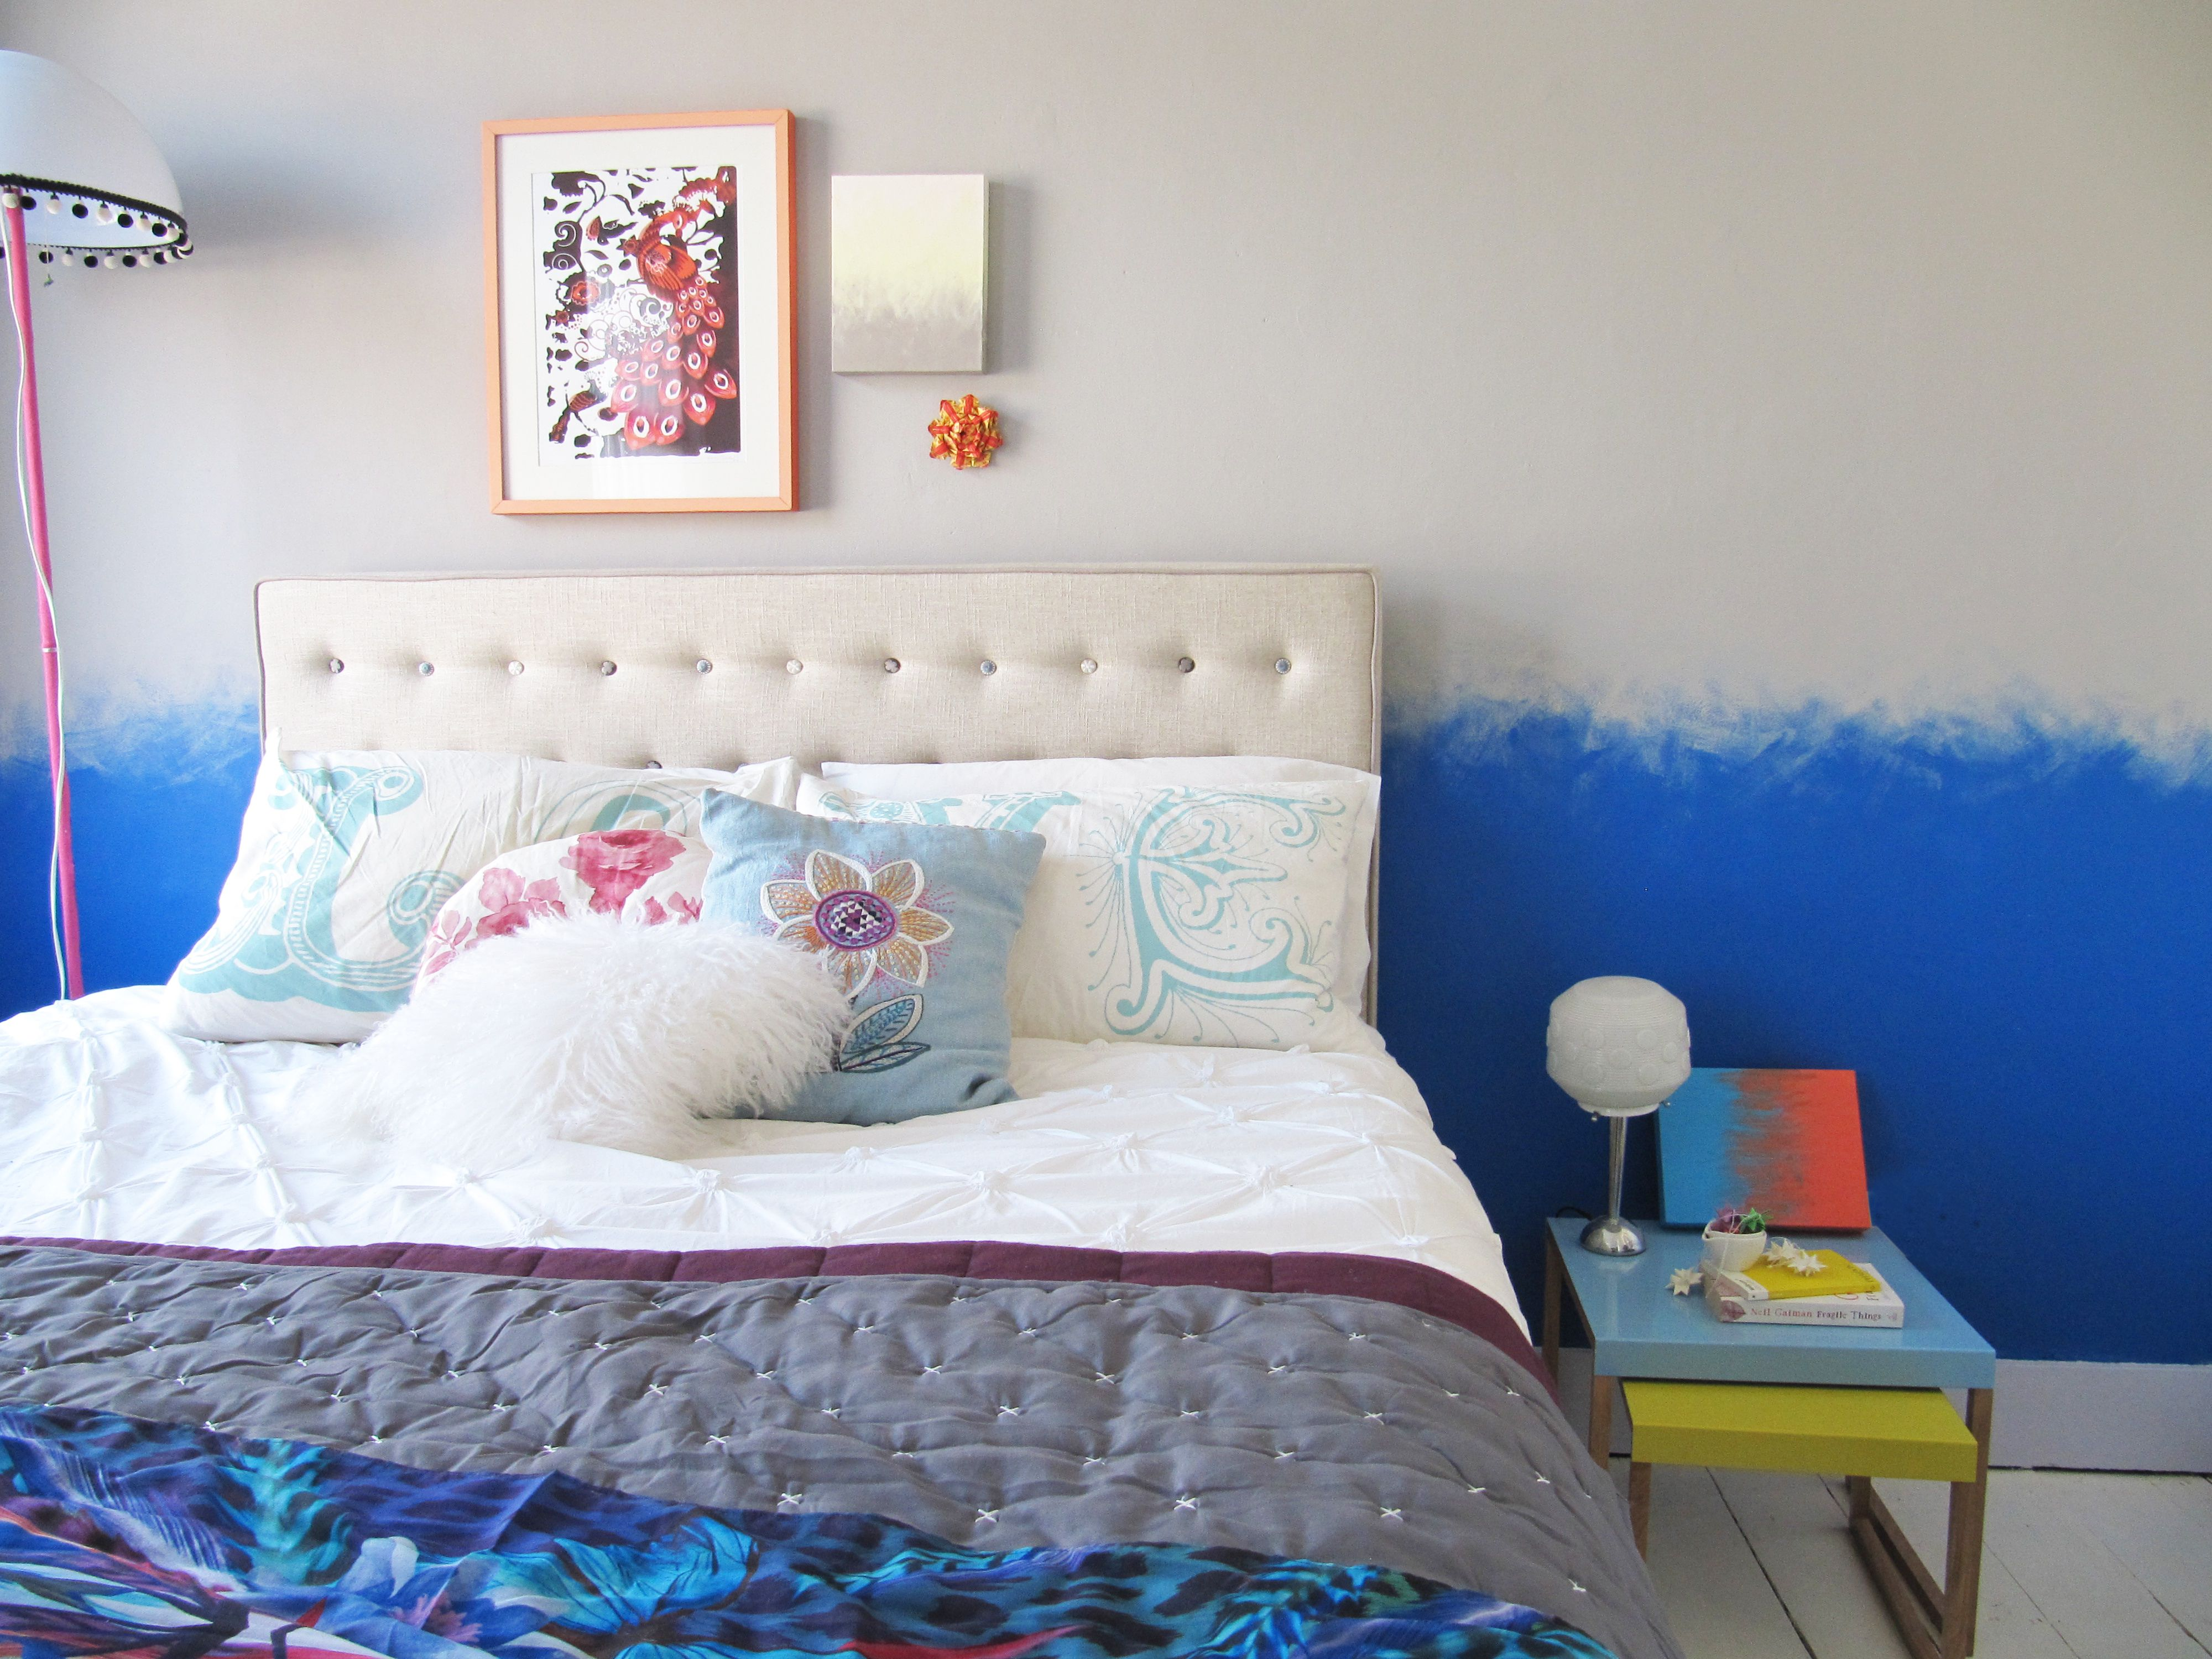 Wall painting effects - Reviving The Paint Effect With Dulux